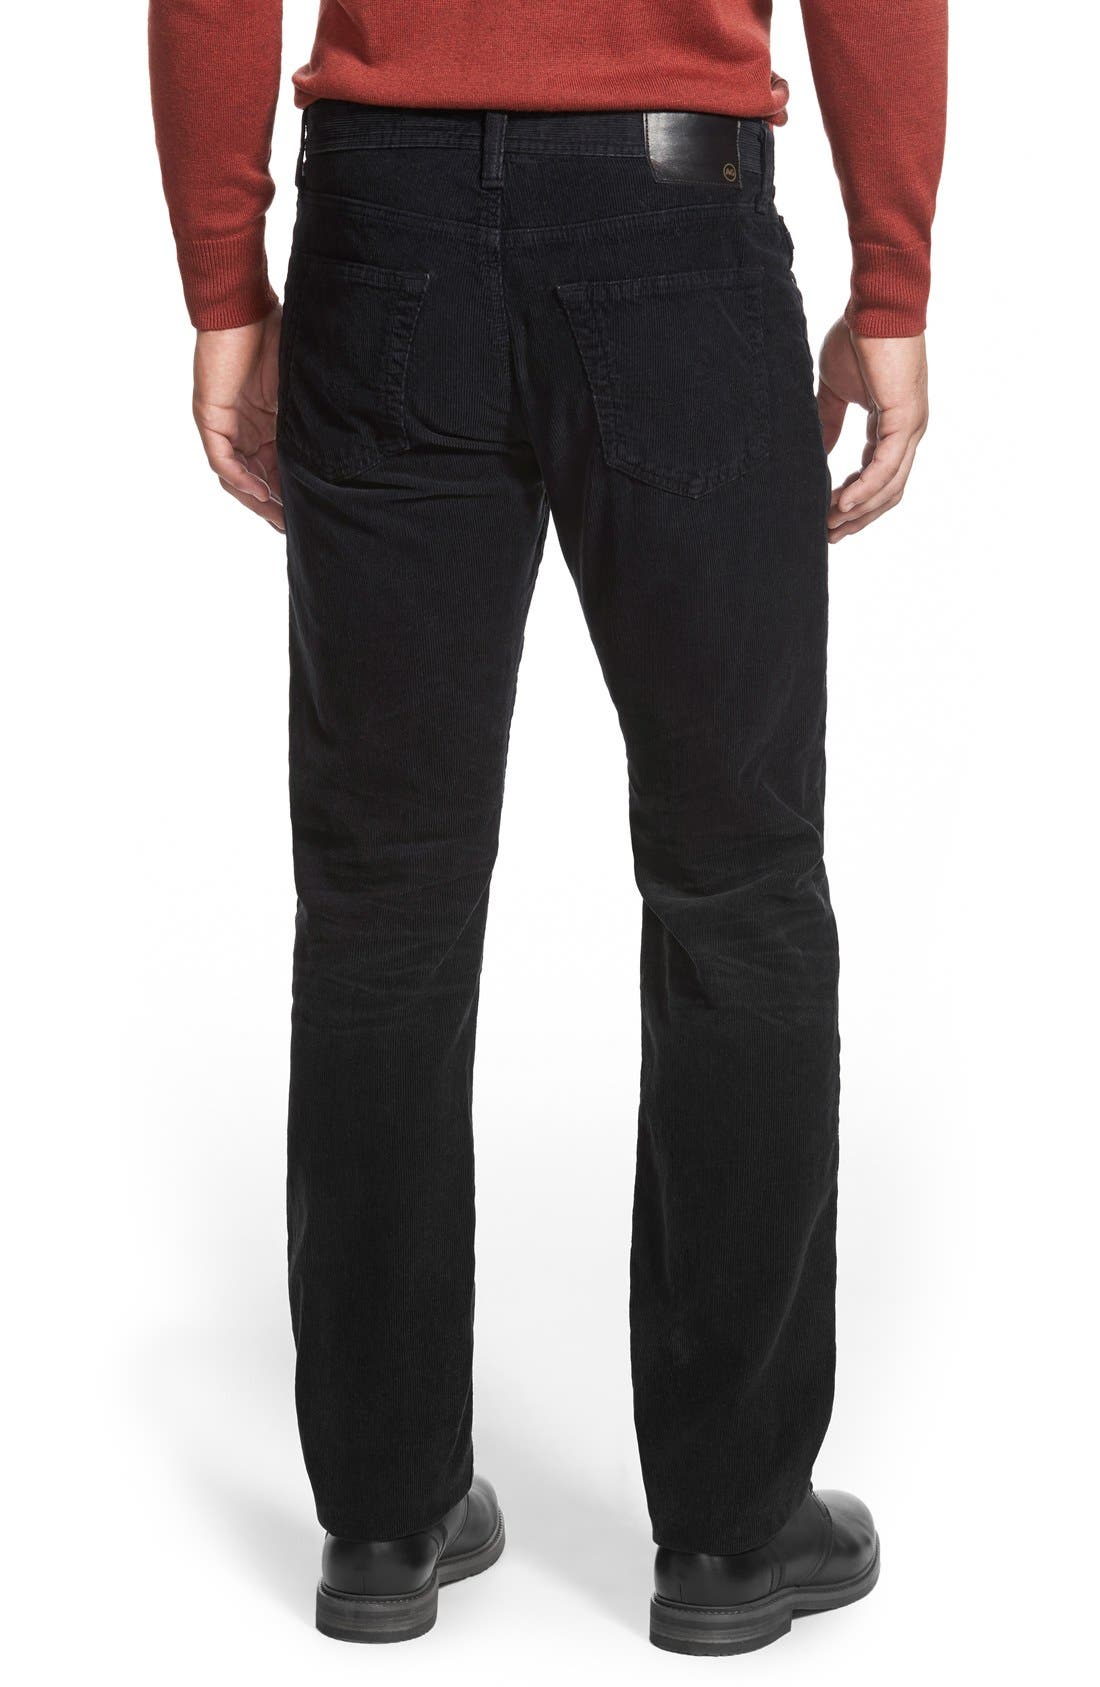 'Graduate' Tailored Straight Leg Corduroy Pants,                             Alternate thumbnail 62, color,